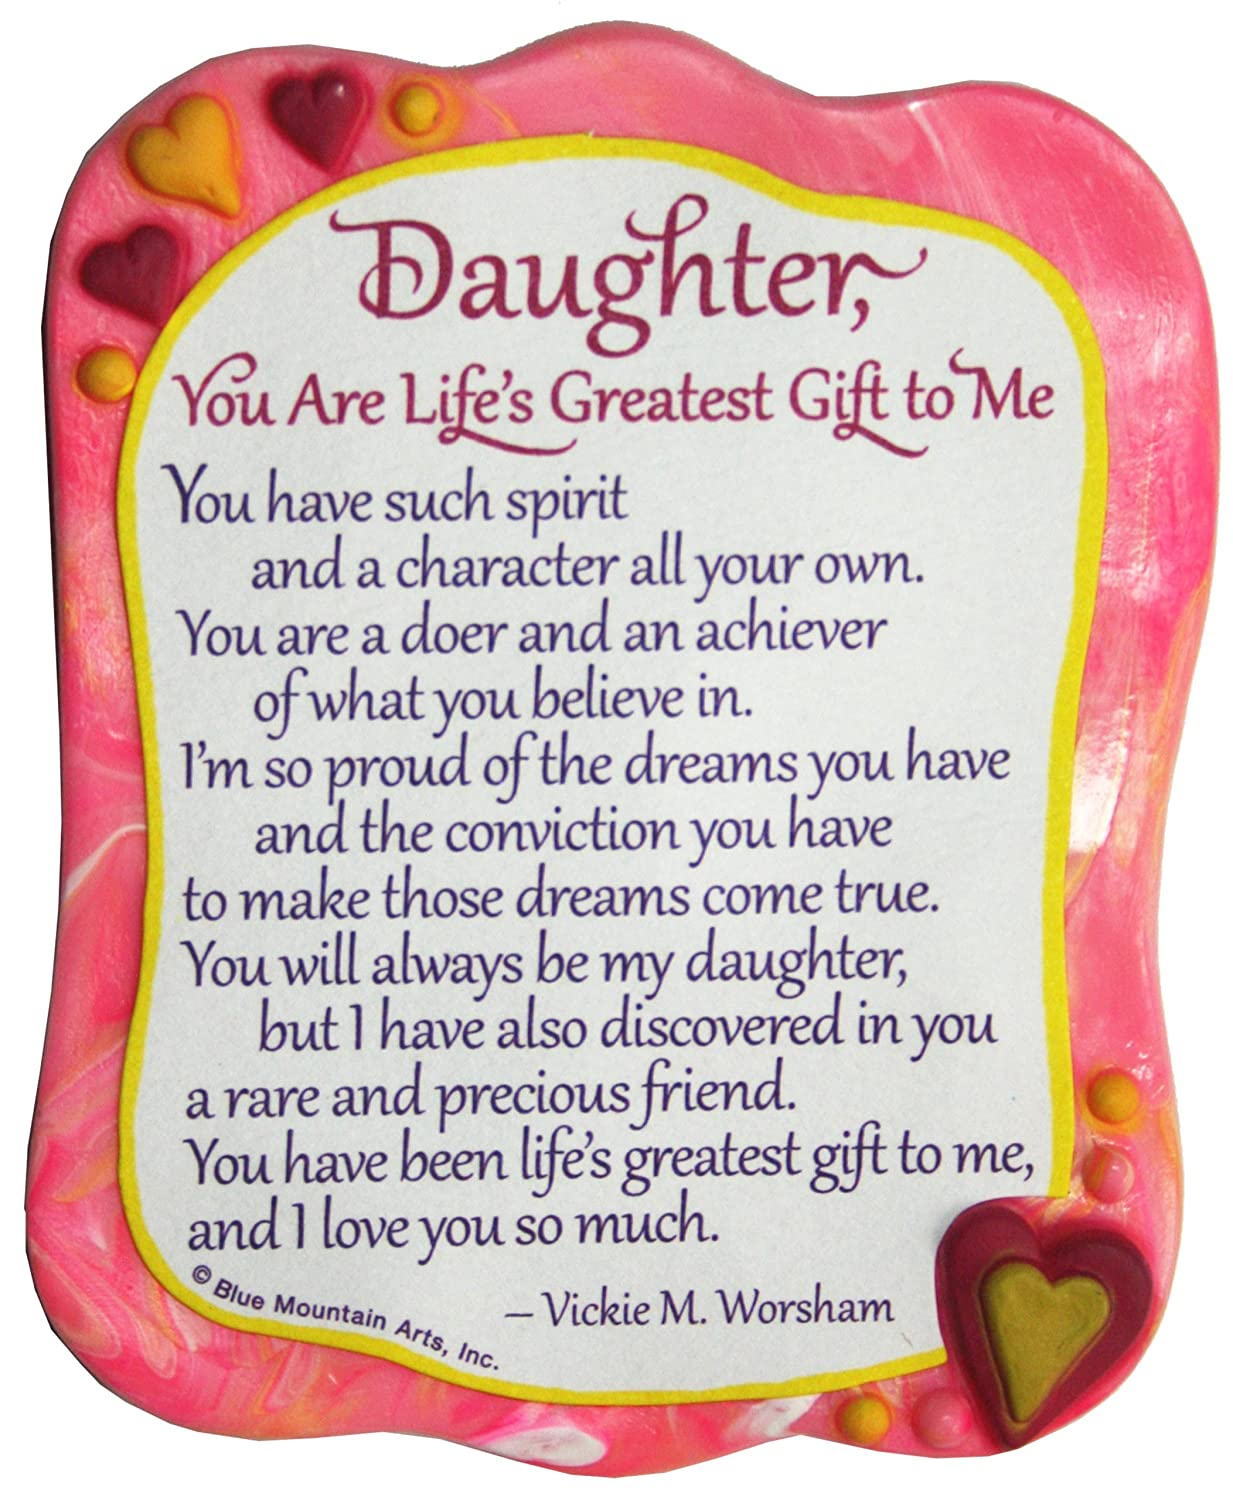 Blue Mountain Arts Daughter You are Life's Greatest Gift to Me by Vickie M. Worsham Sculpted Resin Magnet (MR919)